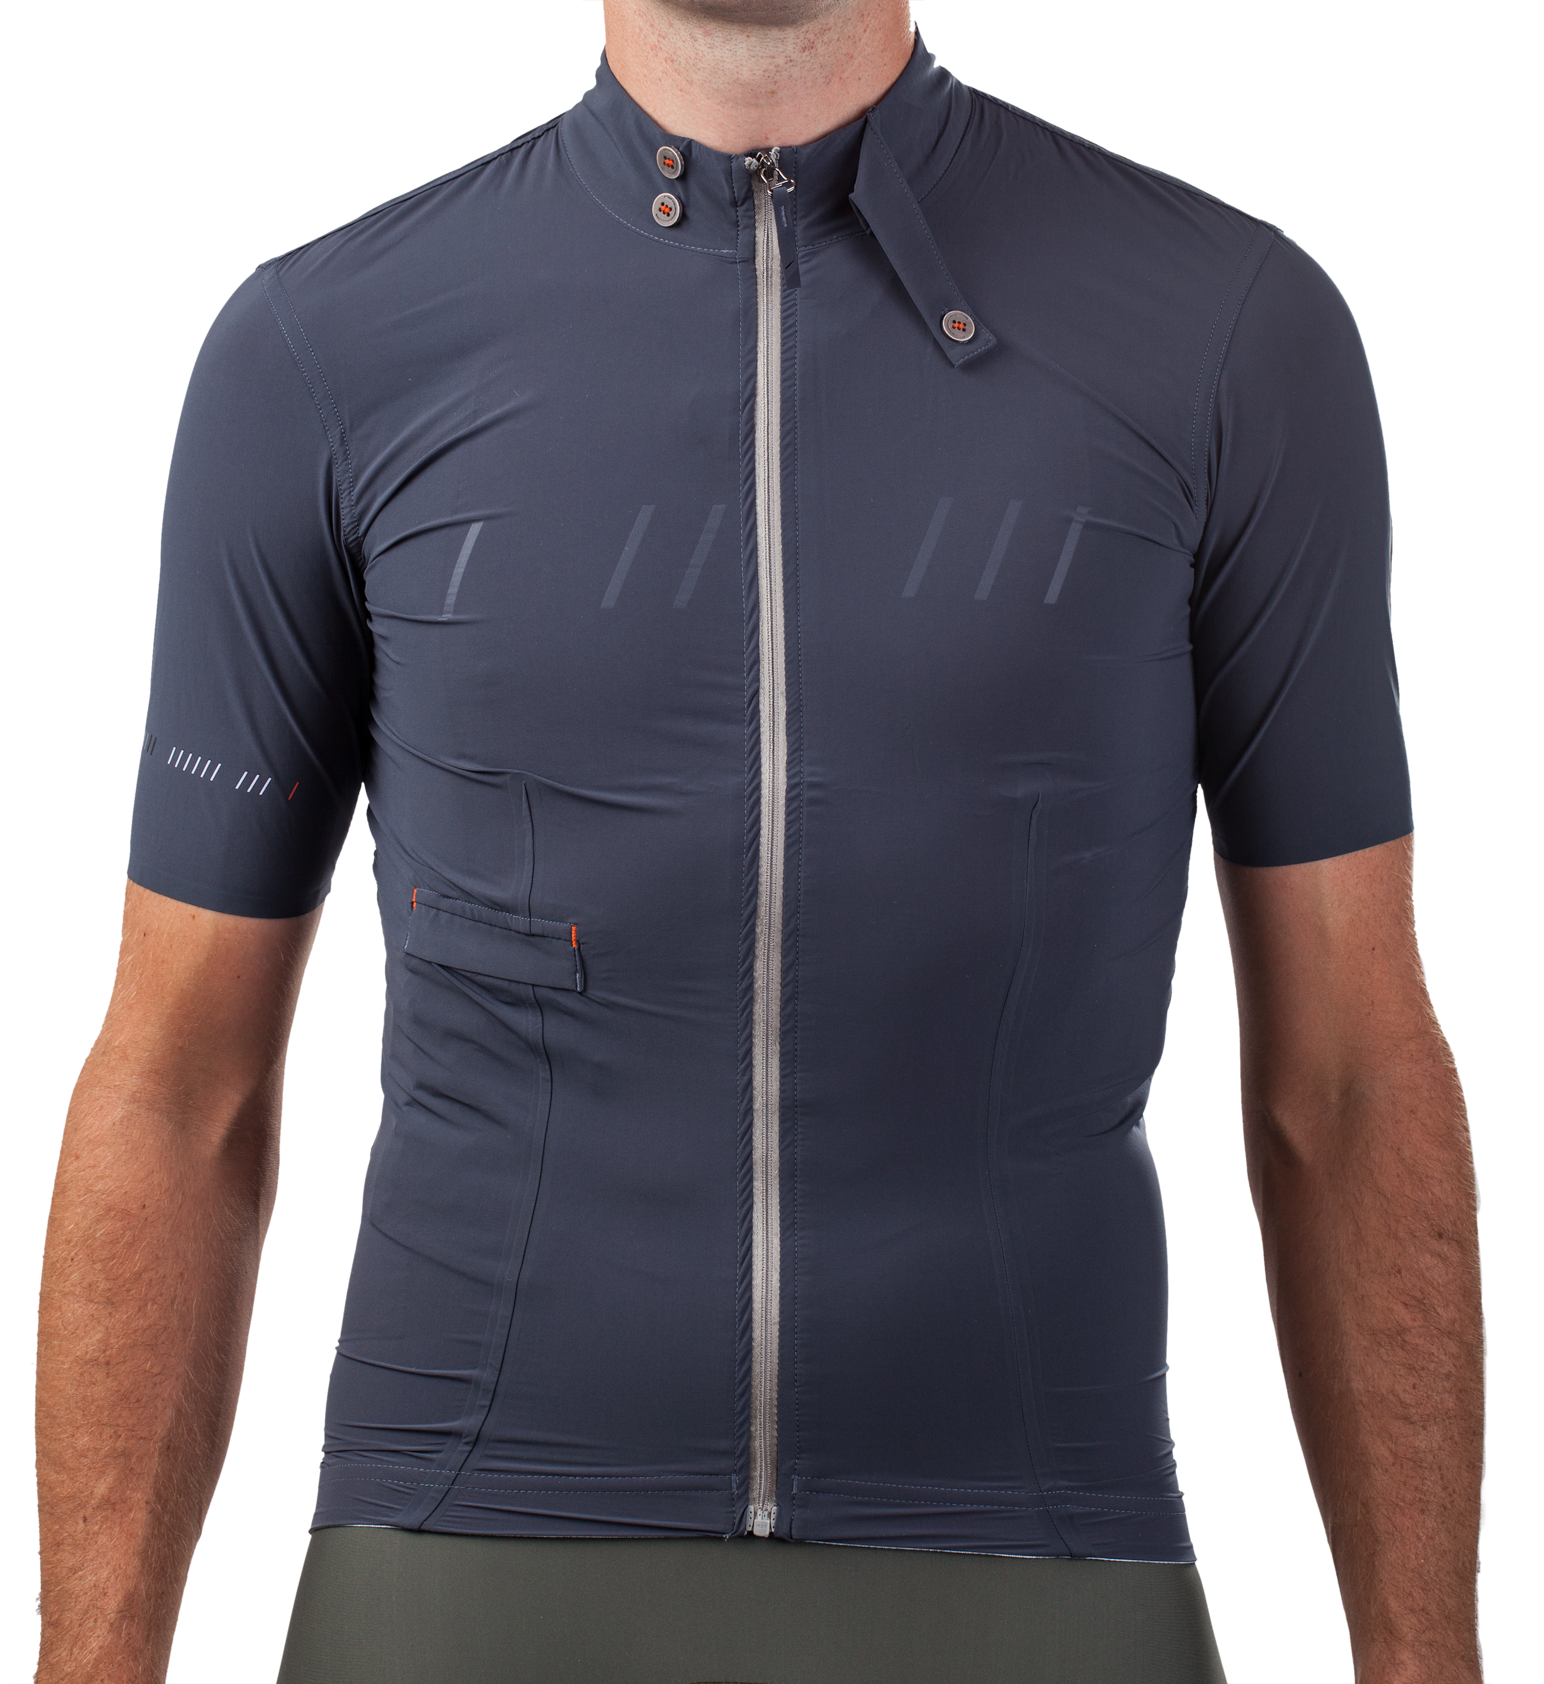 The Chpt.     Jersey uses fabric that s too light to sublimate on 3f5c410fd